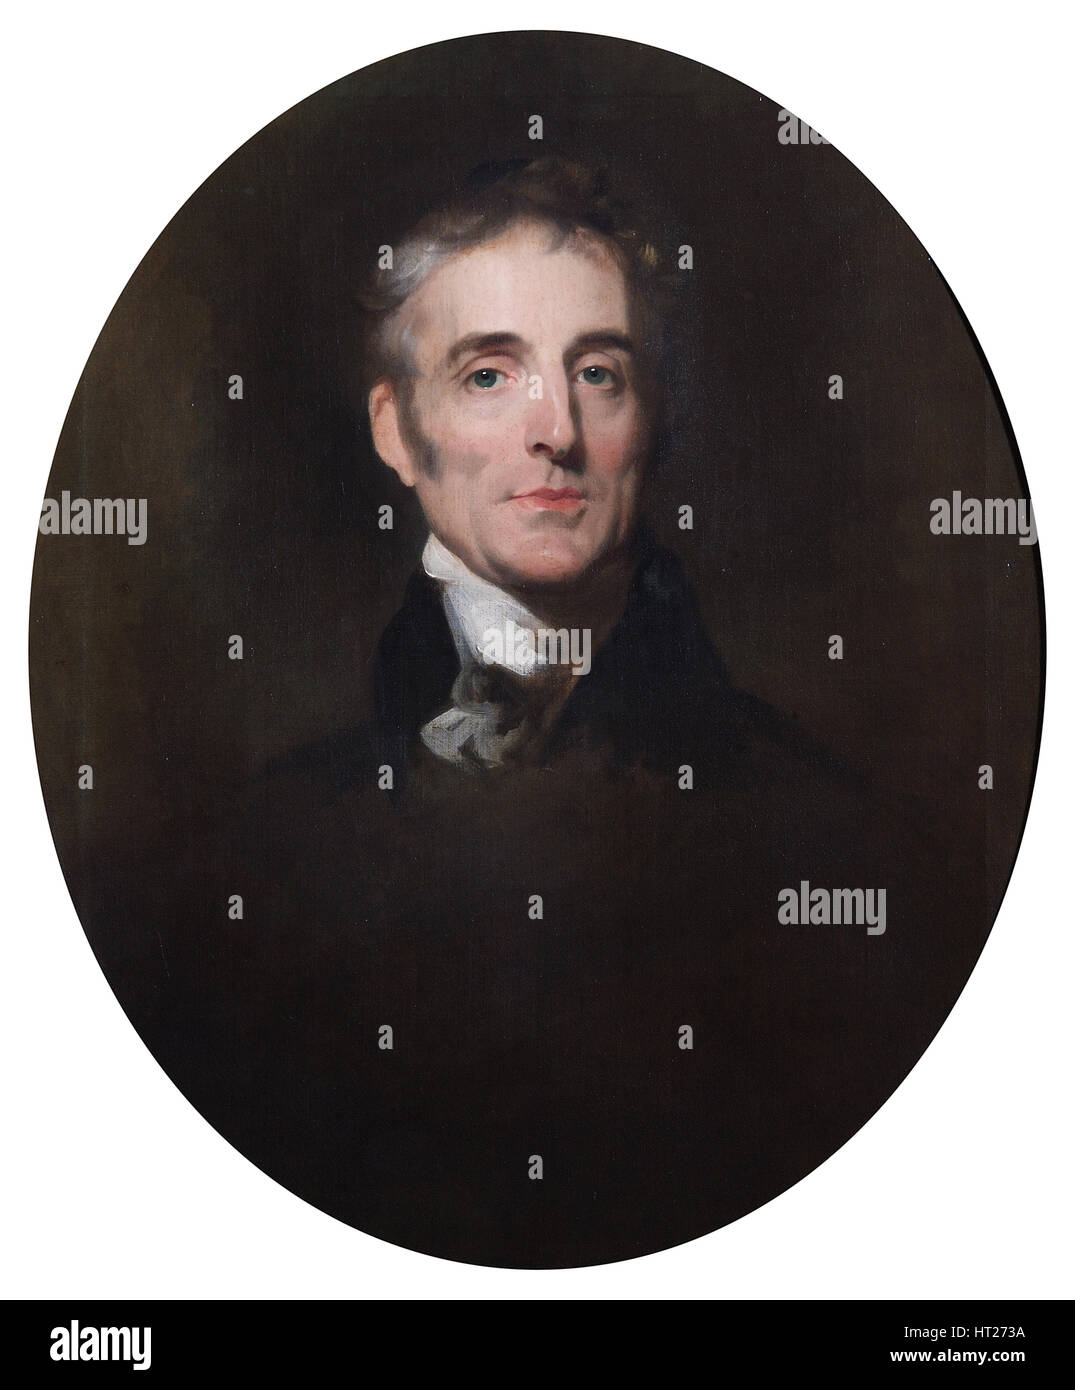 Portrait of the Duke of Wellington, c1835. Artist: John Simpson. - Stock Image